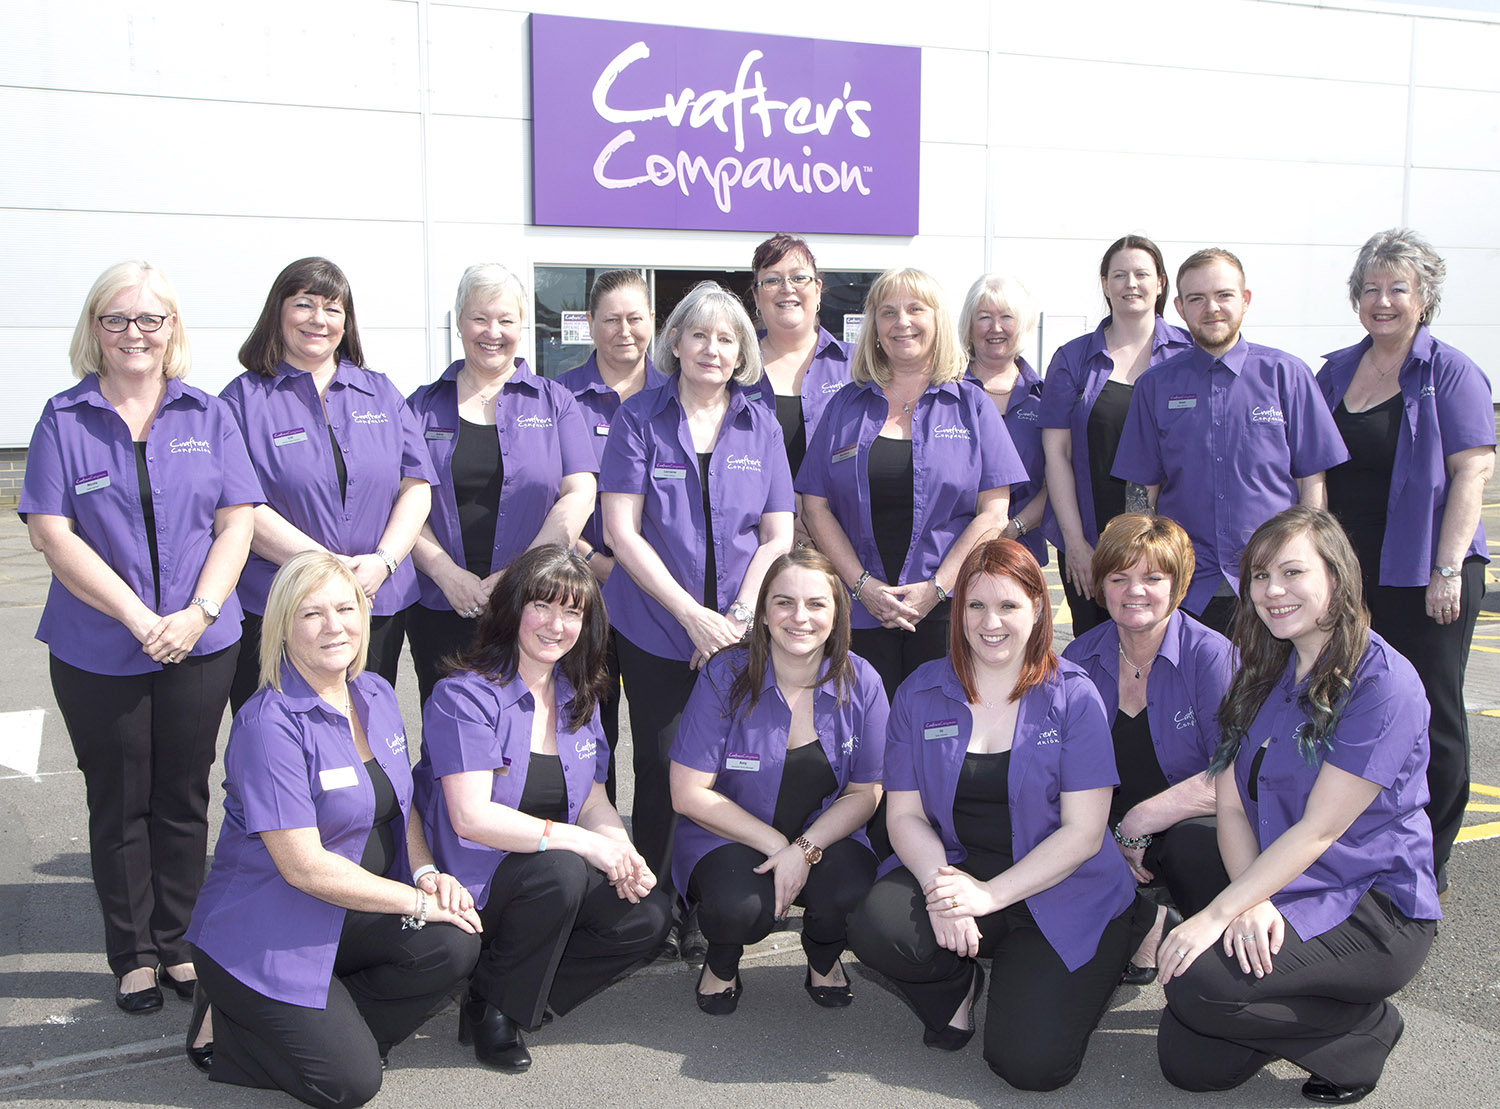 33 Extra Staff Members for New Aycliffe Store